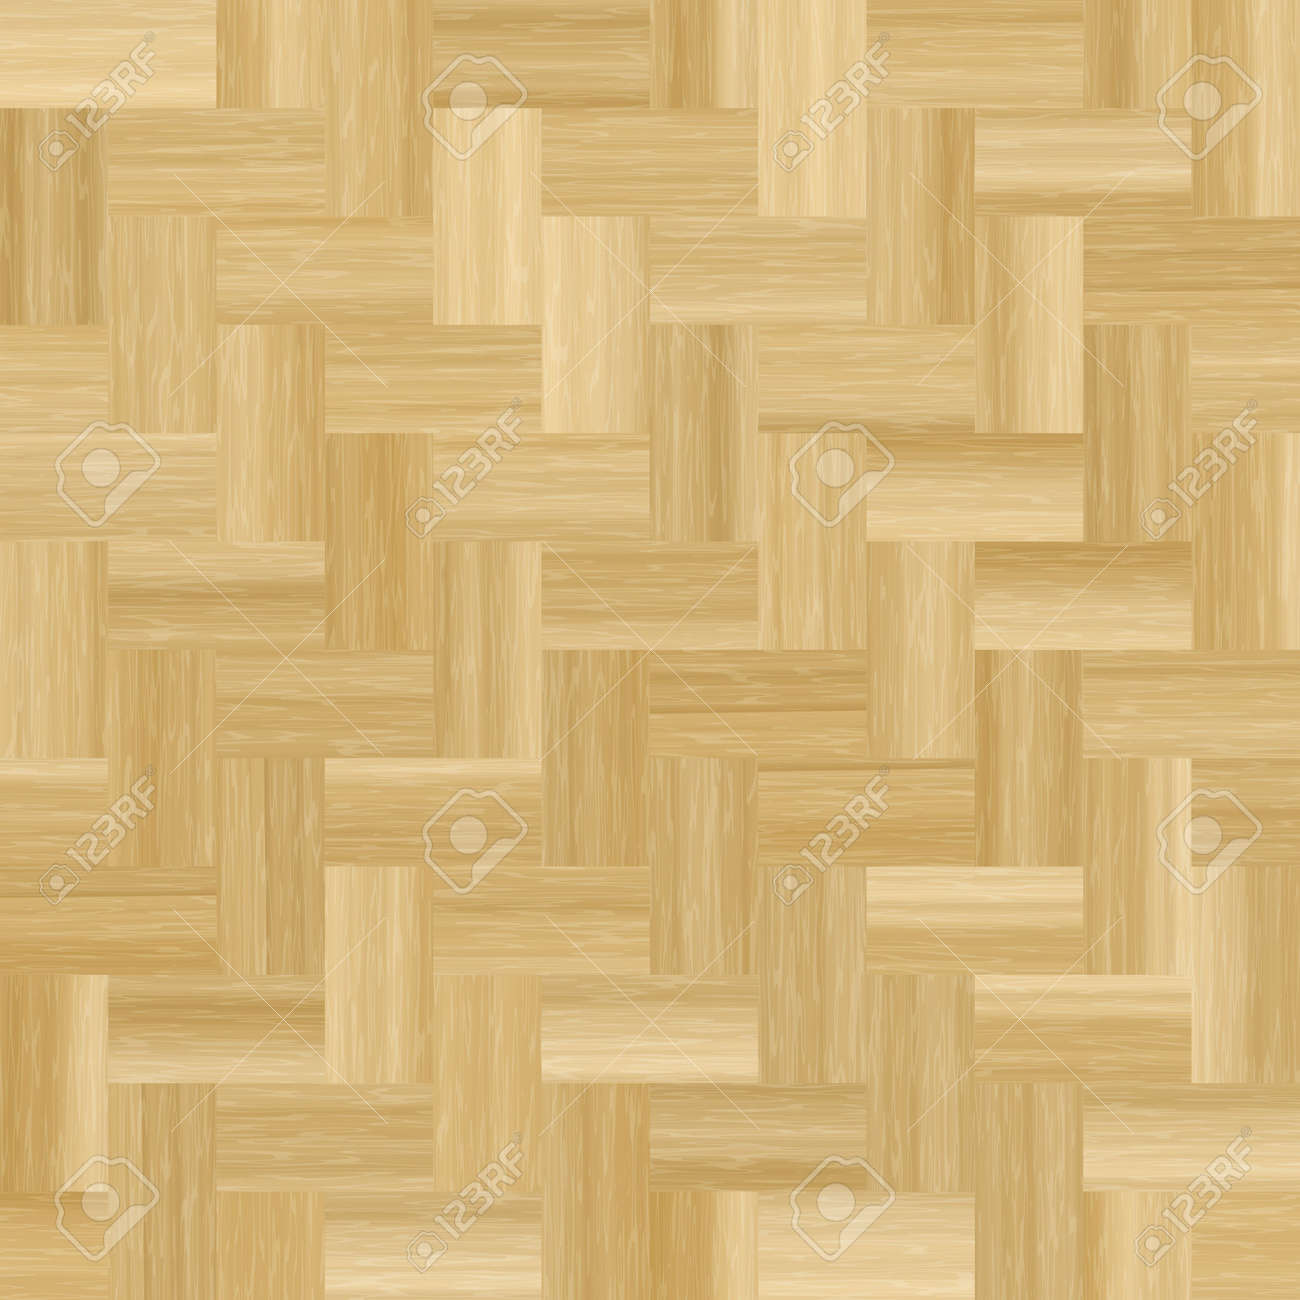 wooden parquet floor, seamlessly tillable Stock Photo - 3395060